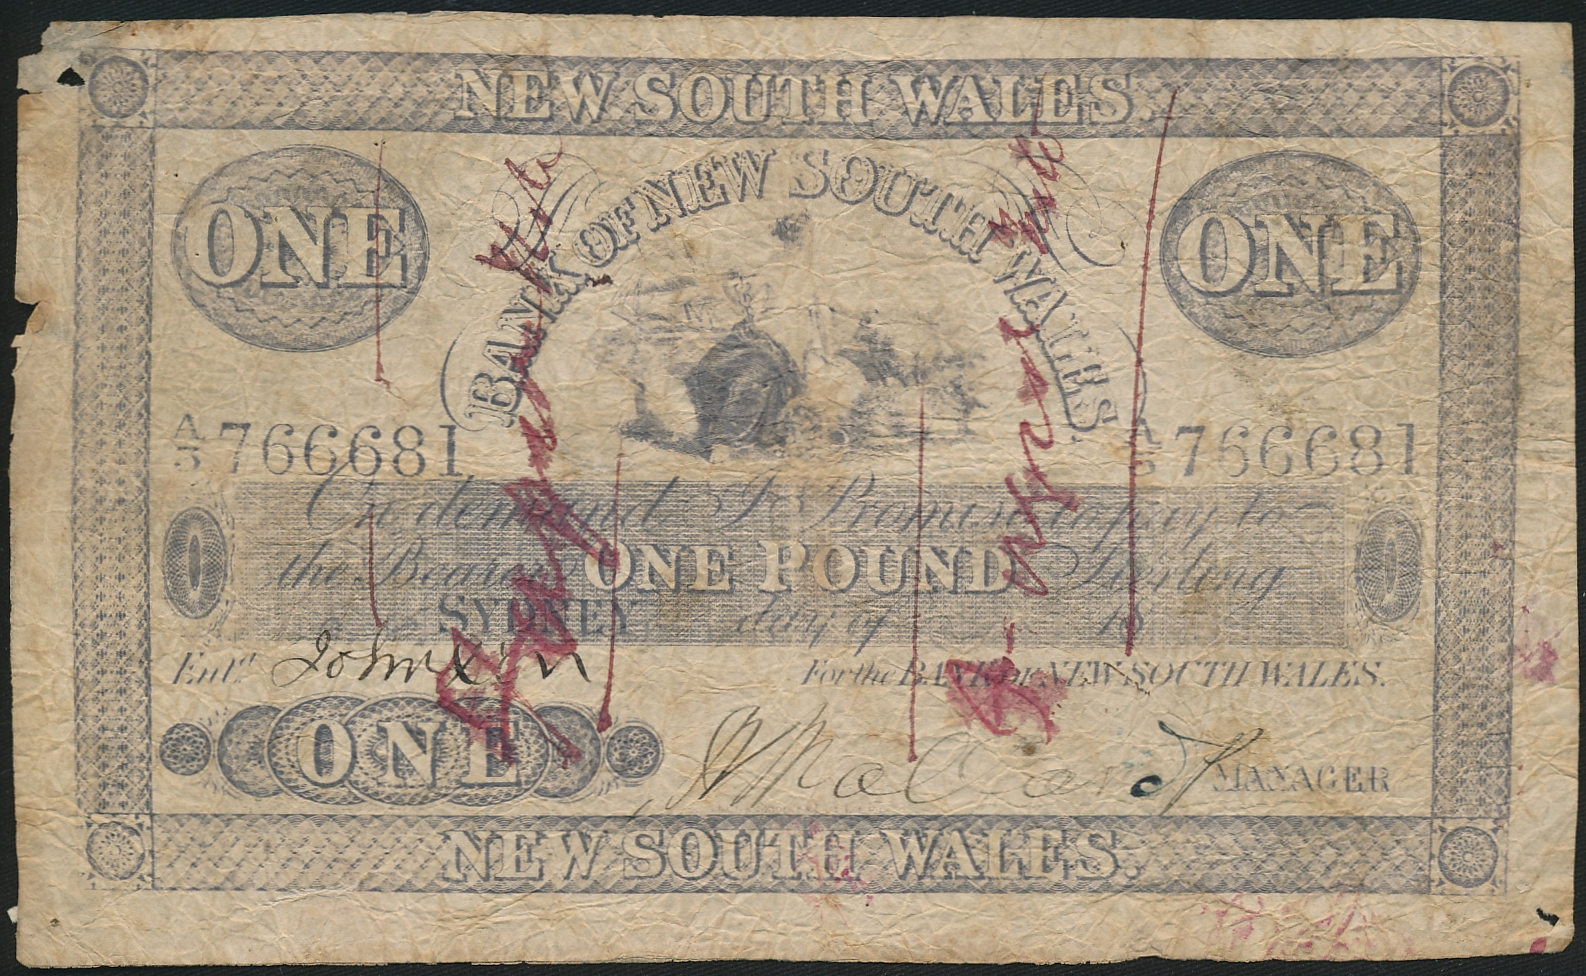 Australia-c1880-Bank-of-New-South-Wales-Sydney-1-Contemporary-forgery-RARE